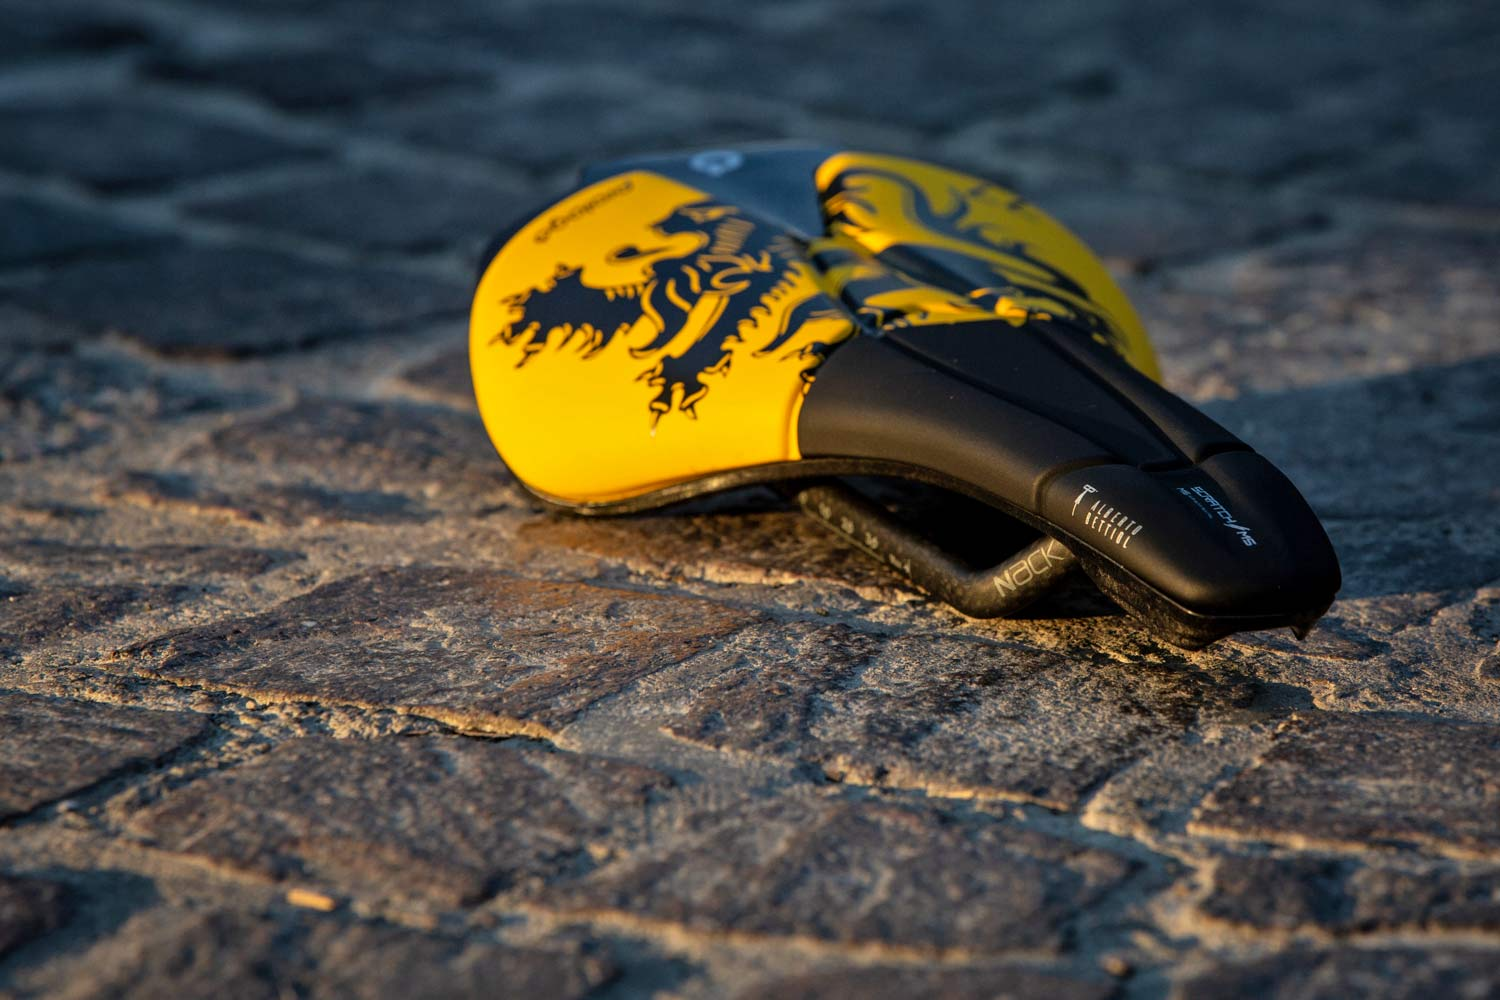 Get ready for Spring Classics in Fall, on limited edition Prologo Lion of Flanders saddle